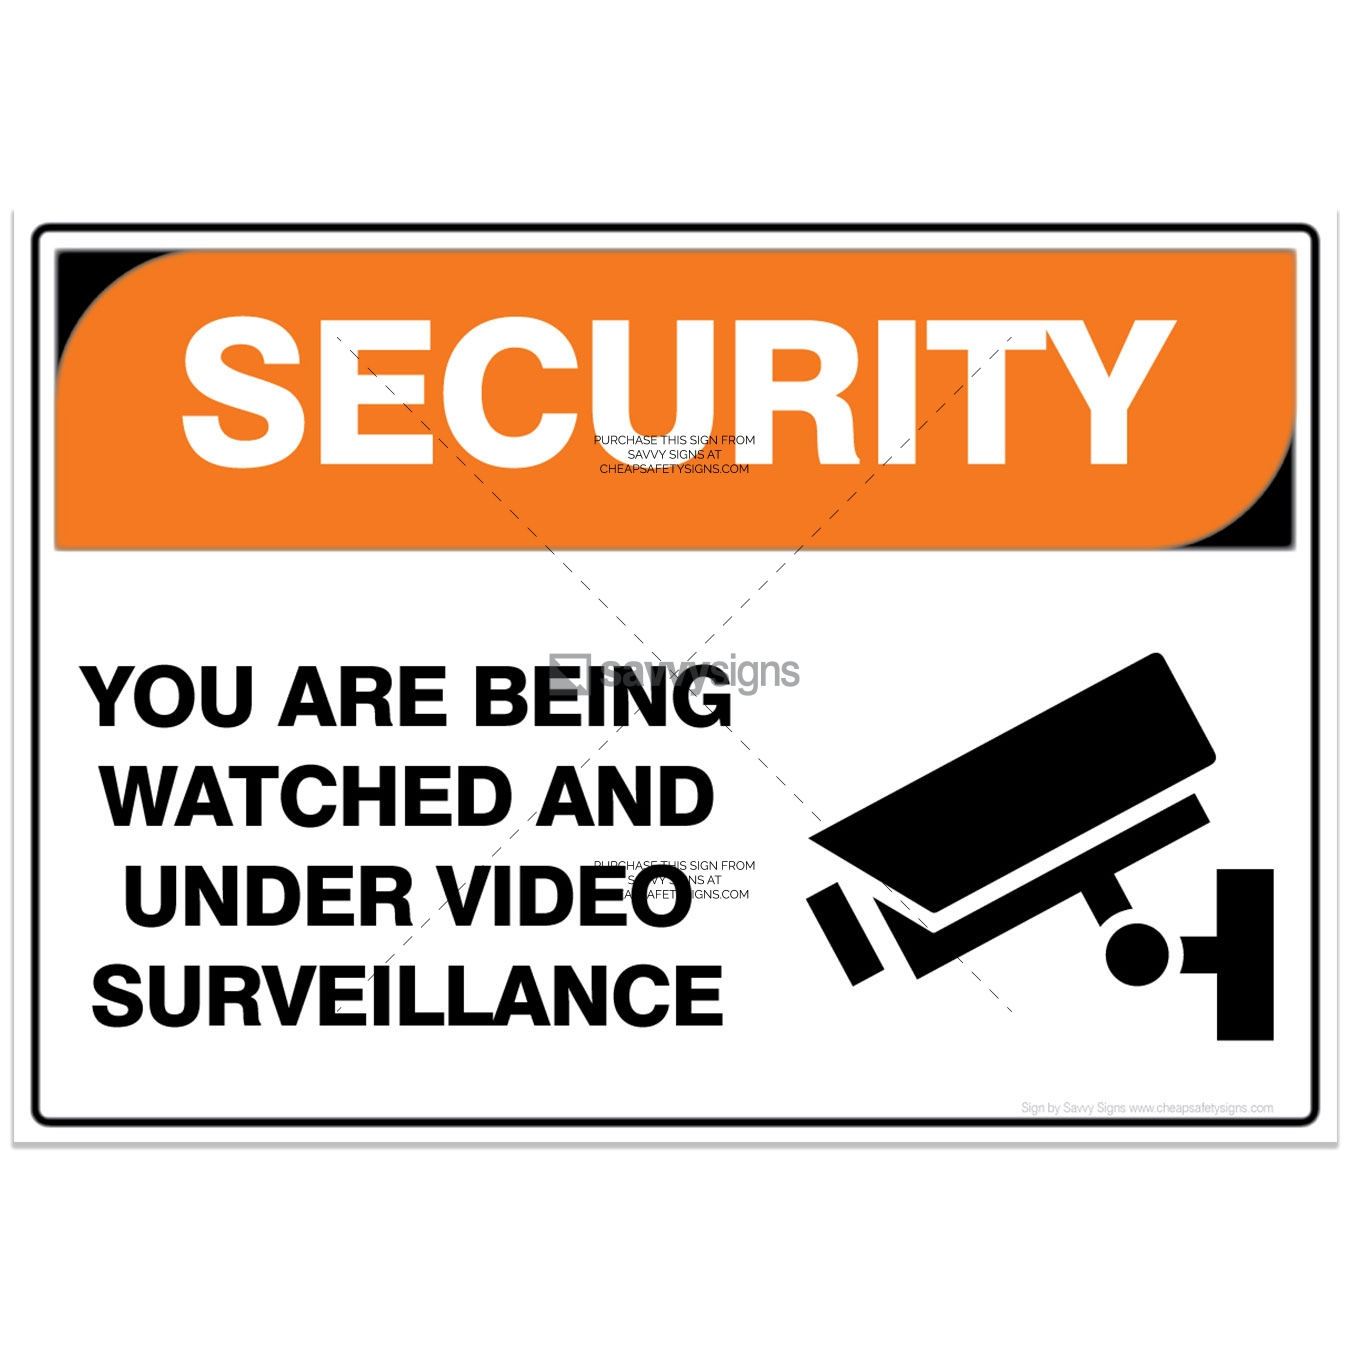 SSSEC3029-SECURITY-Workplace-Safety-Signs_Savvy-Signs_v3